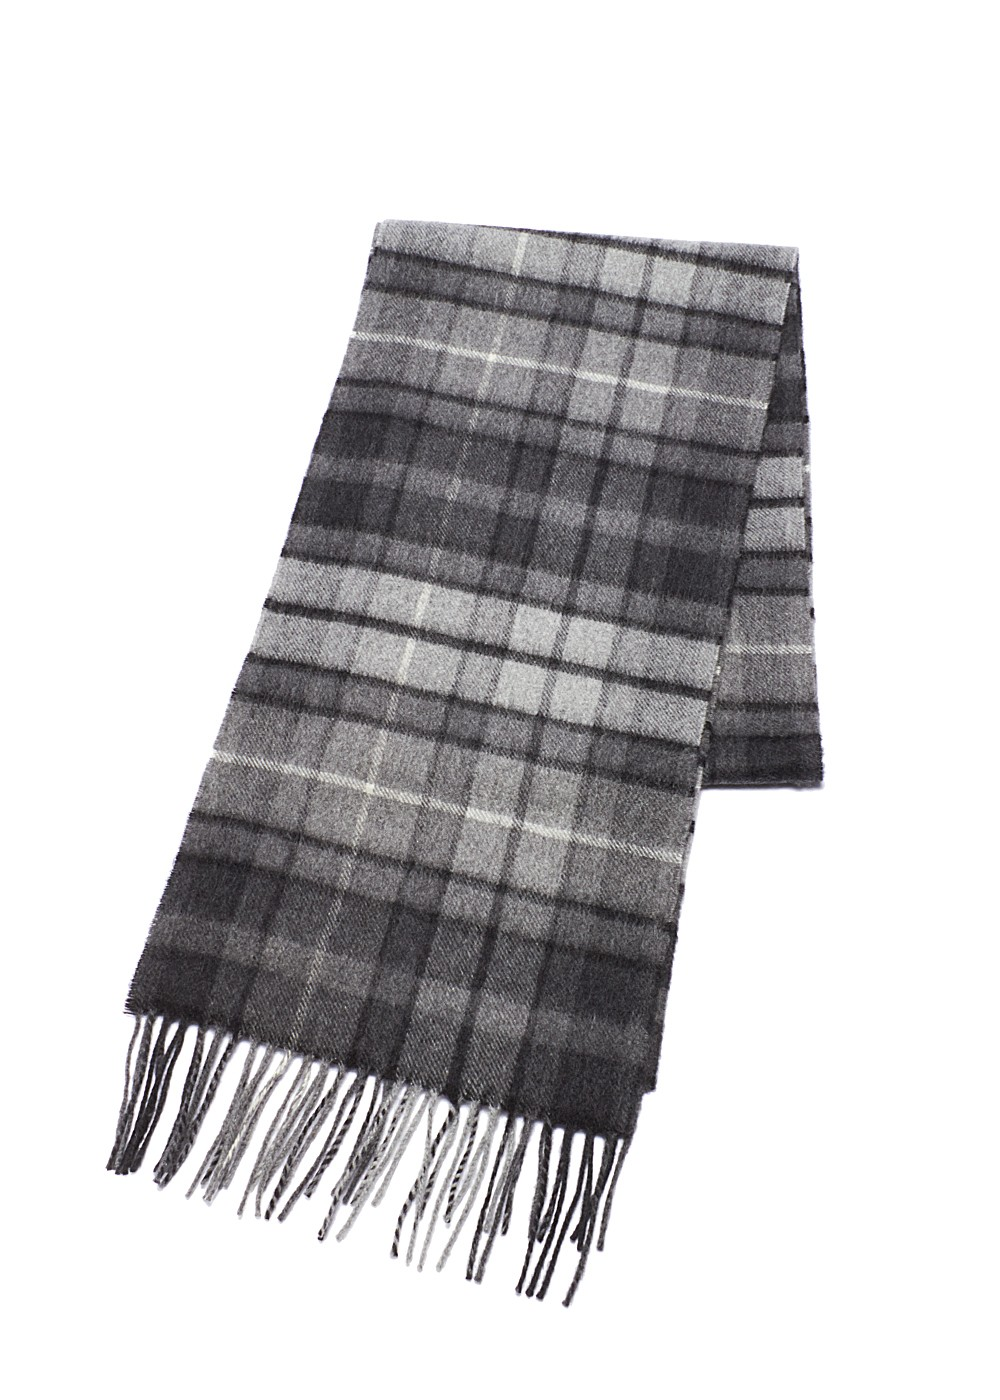 Tartan マフラー|Grey Buchanan|ストール|Johnstons(I)|最大46%OFF